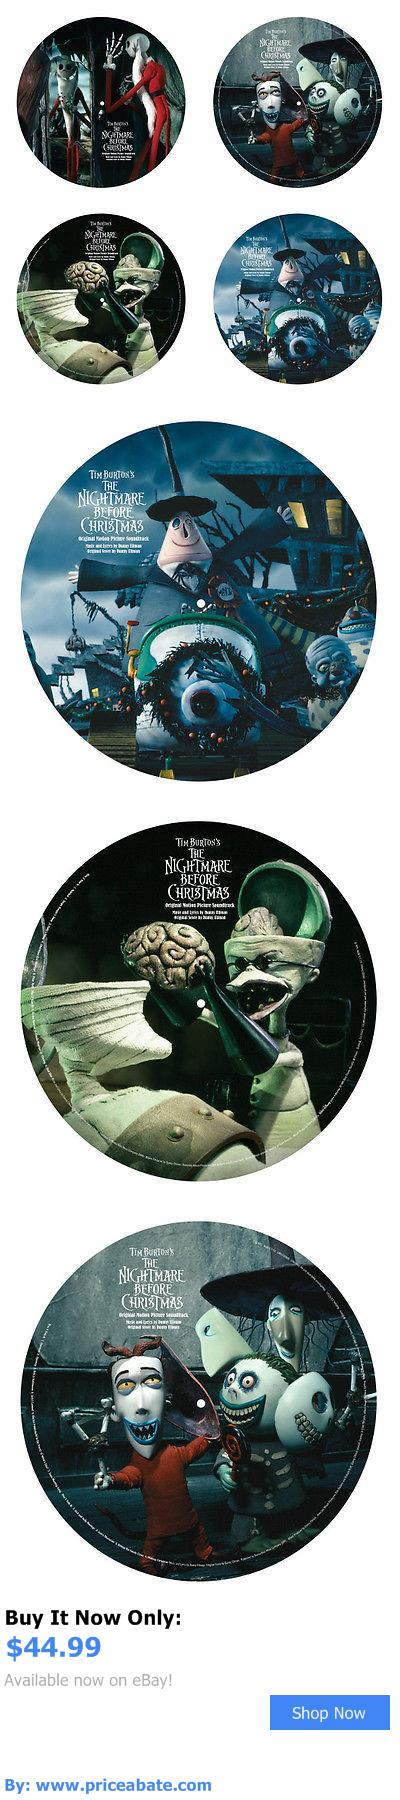 Music Albums: Tim Burton The Nightmare Before Christmas Double Lp Vinyl Record Album Brand New BUY IT NOW ONLY: $44.99 #priceabateMusicAlbums OR #priceabate